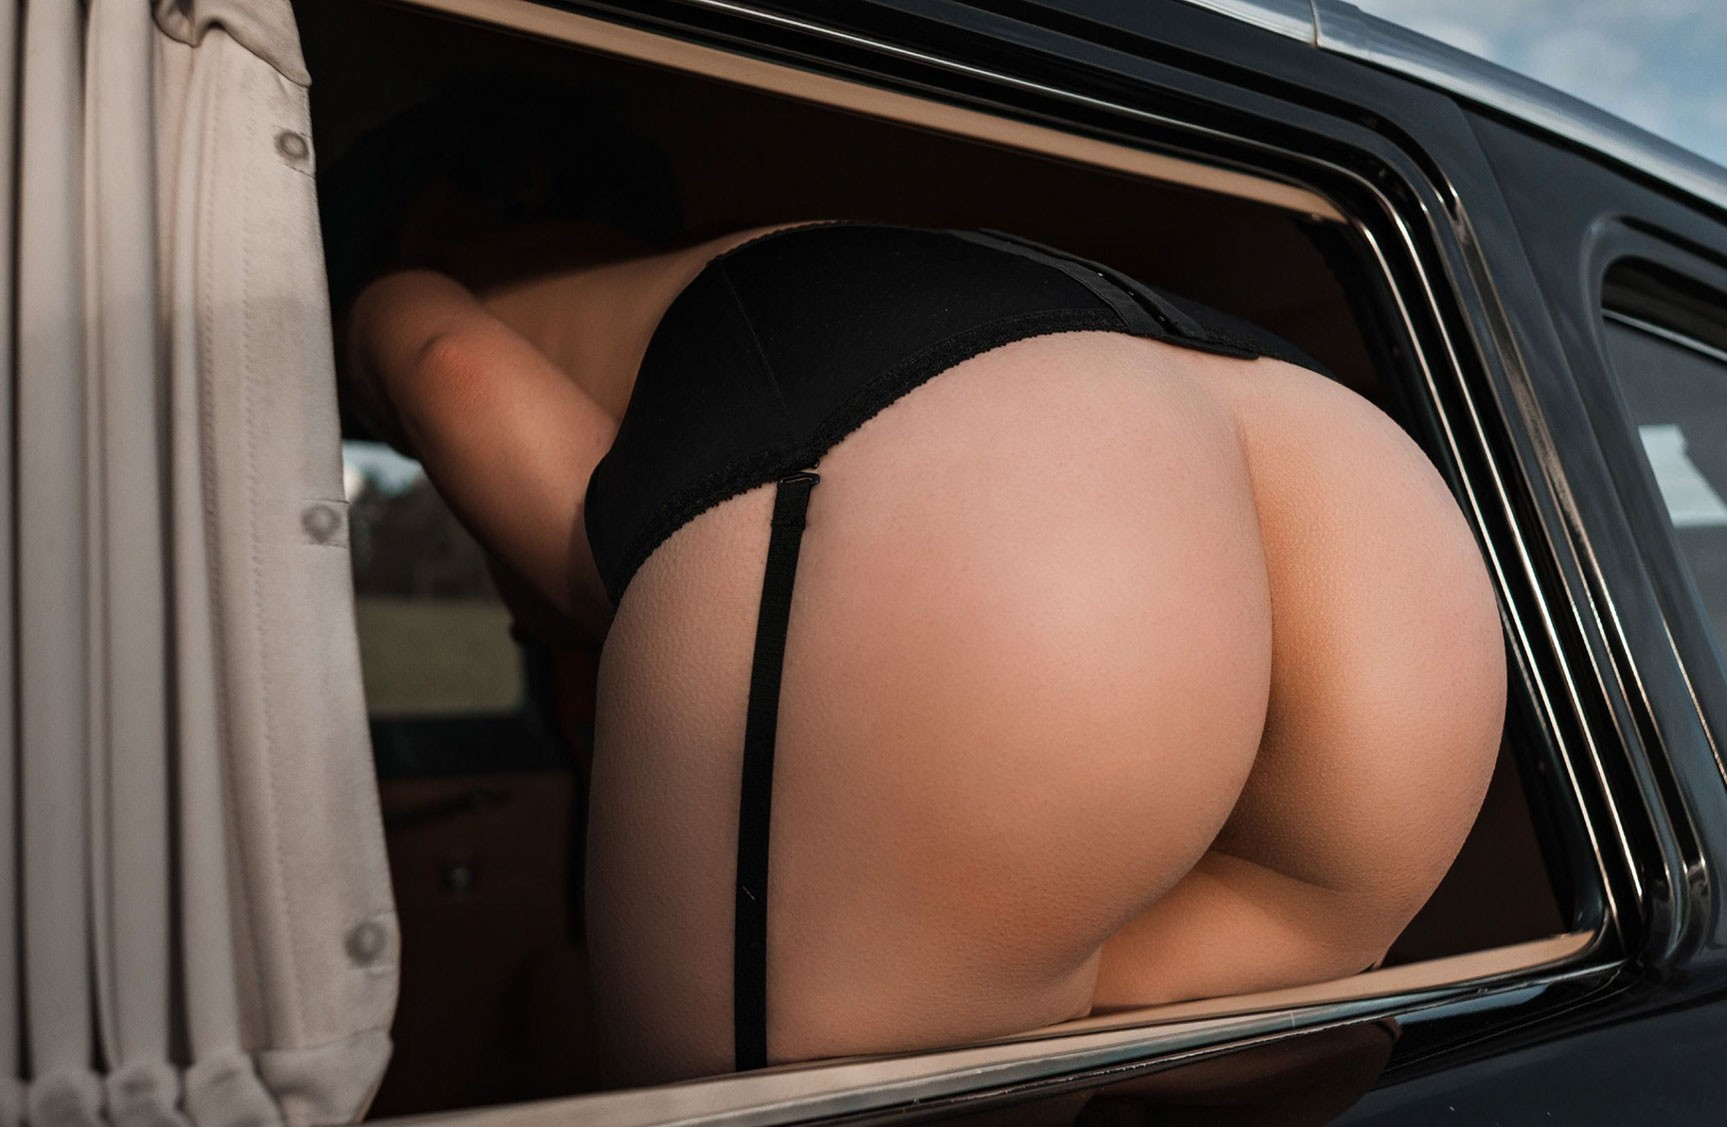 Екатерина Резнова в Чайке / Ekaterina Reznova nude by Petr Demichev - Girl in the Soviet Limo - Volo 50 june 2017